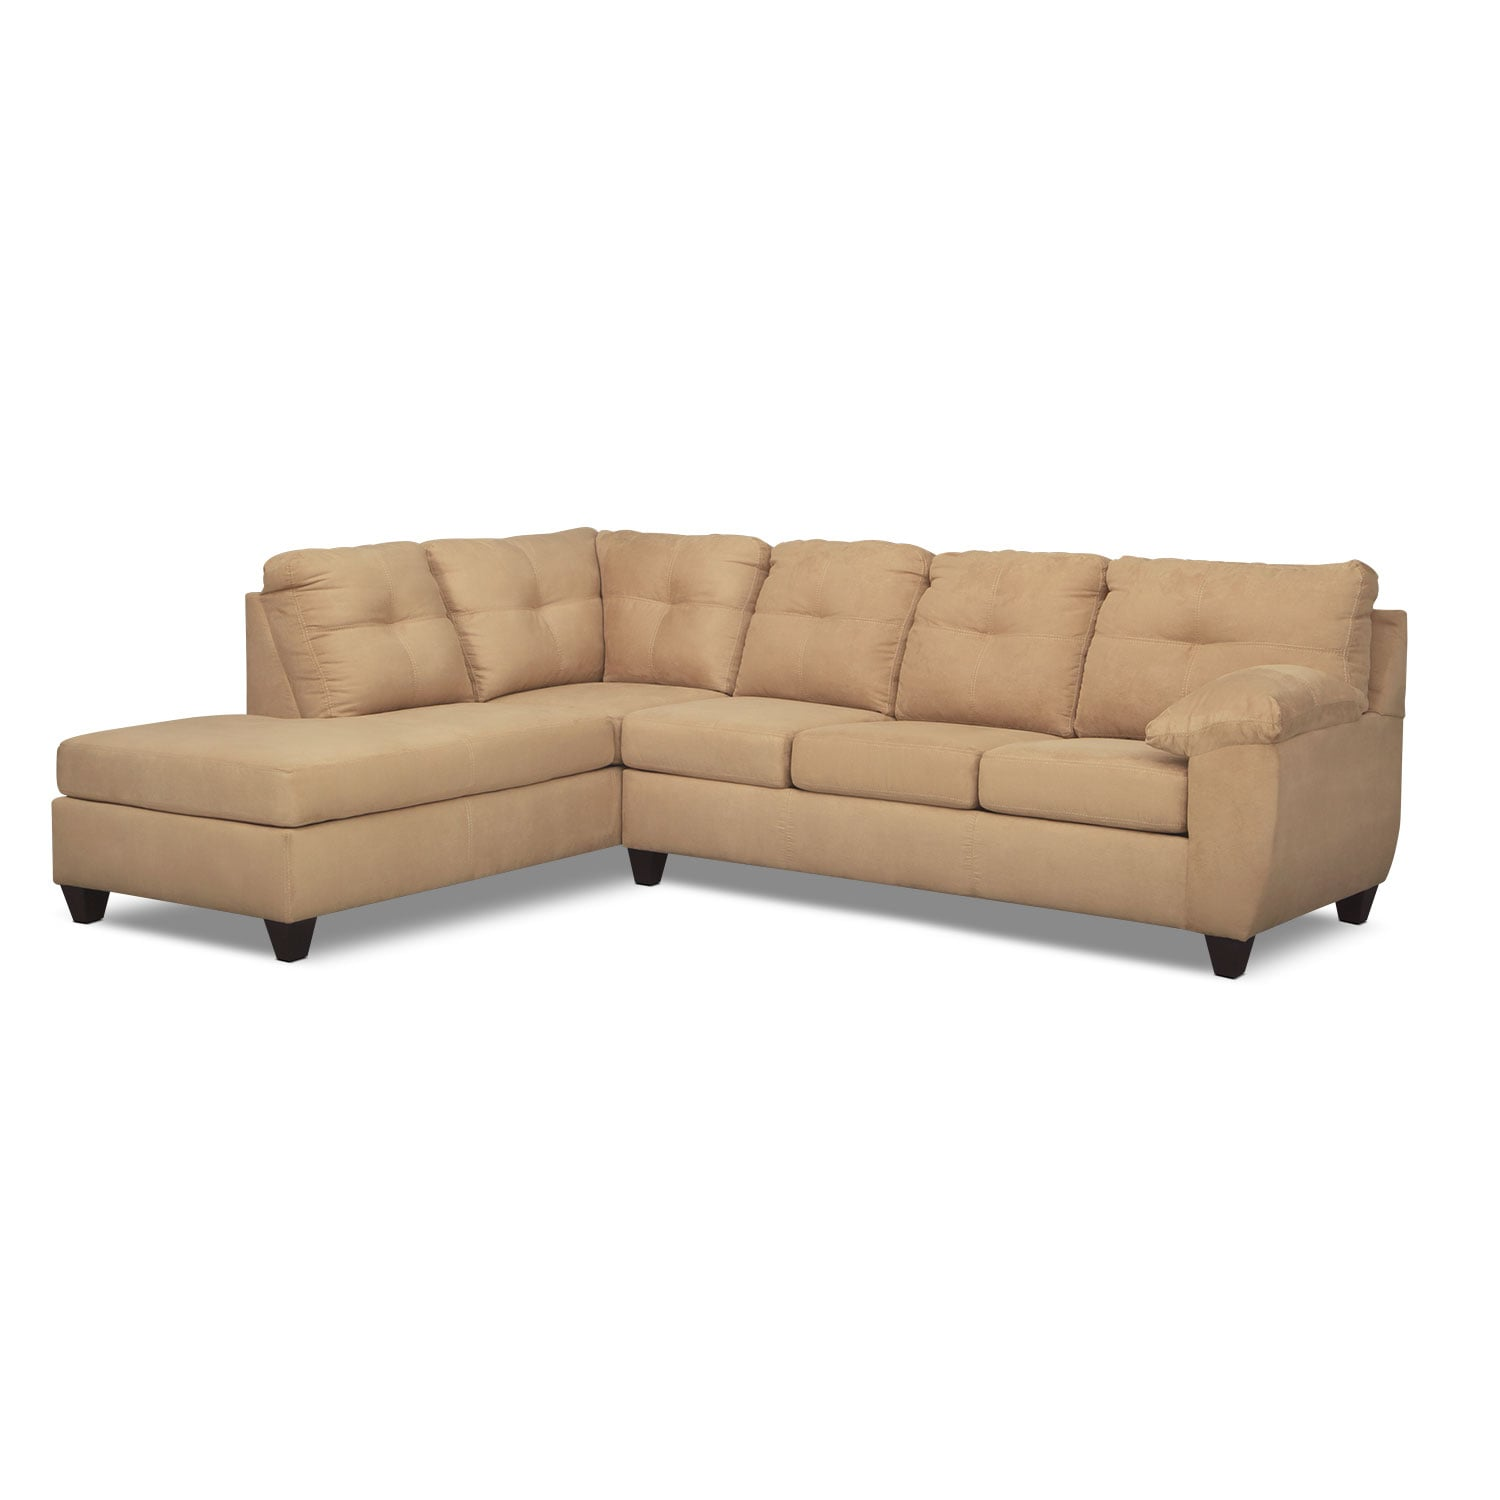 sofa donation how big is a sleeper sectional emailsanity